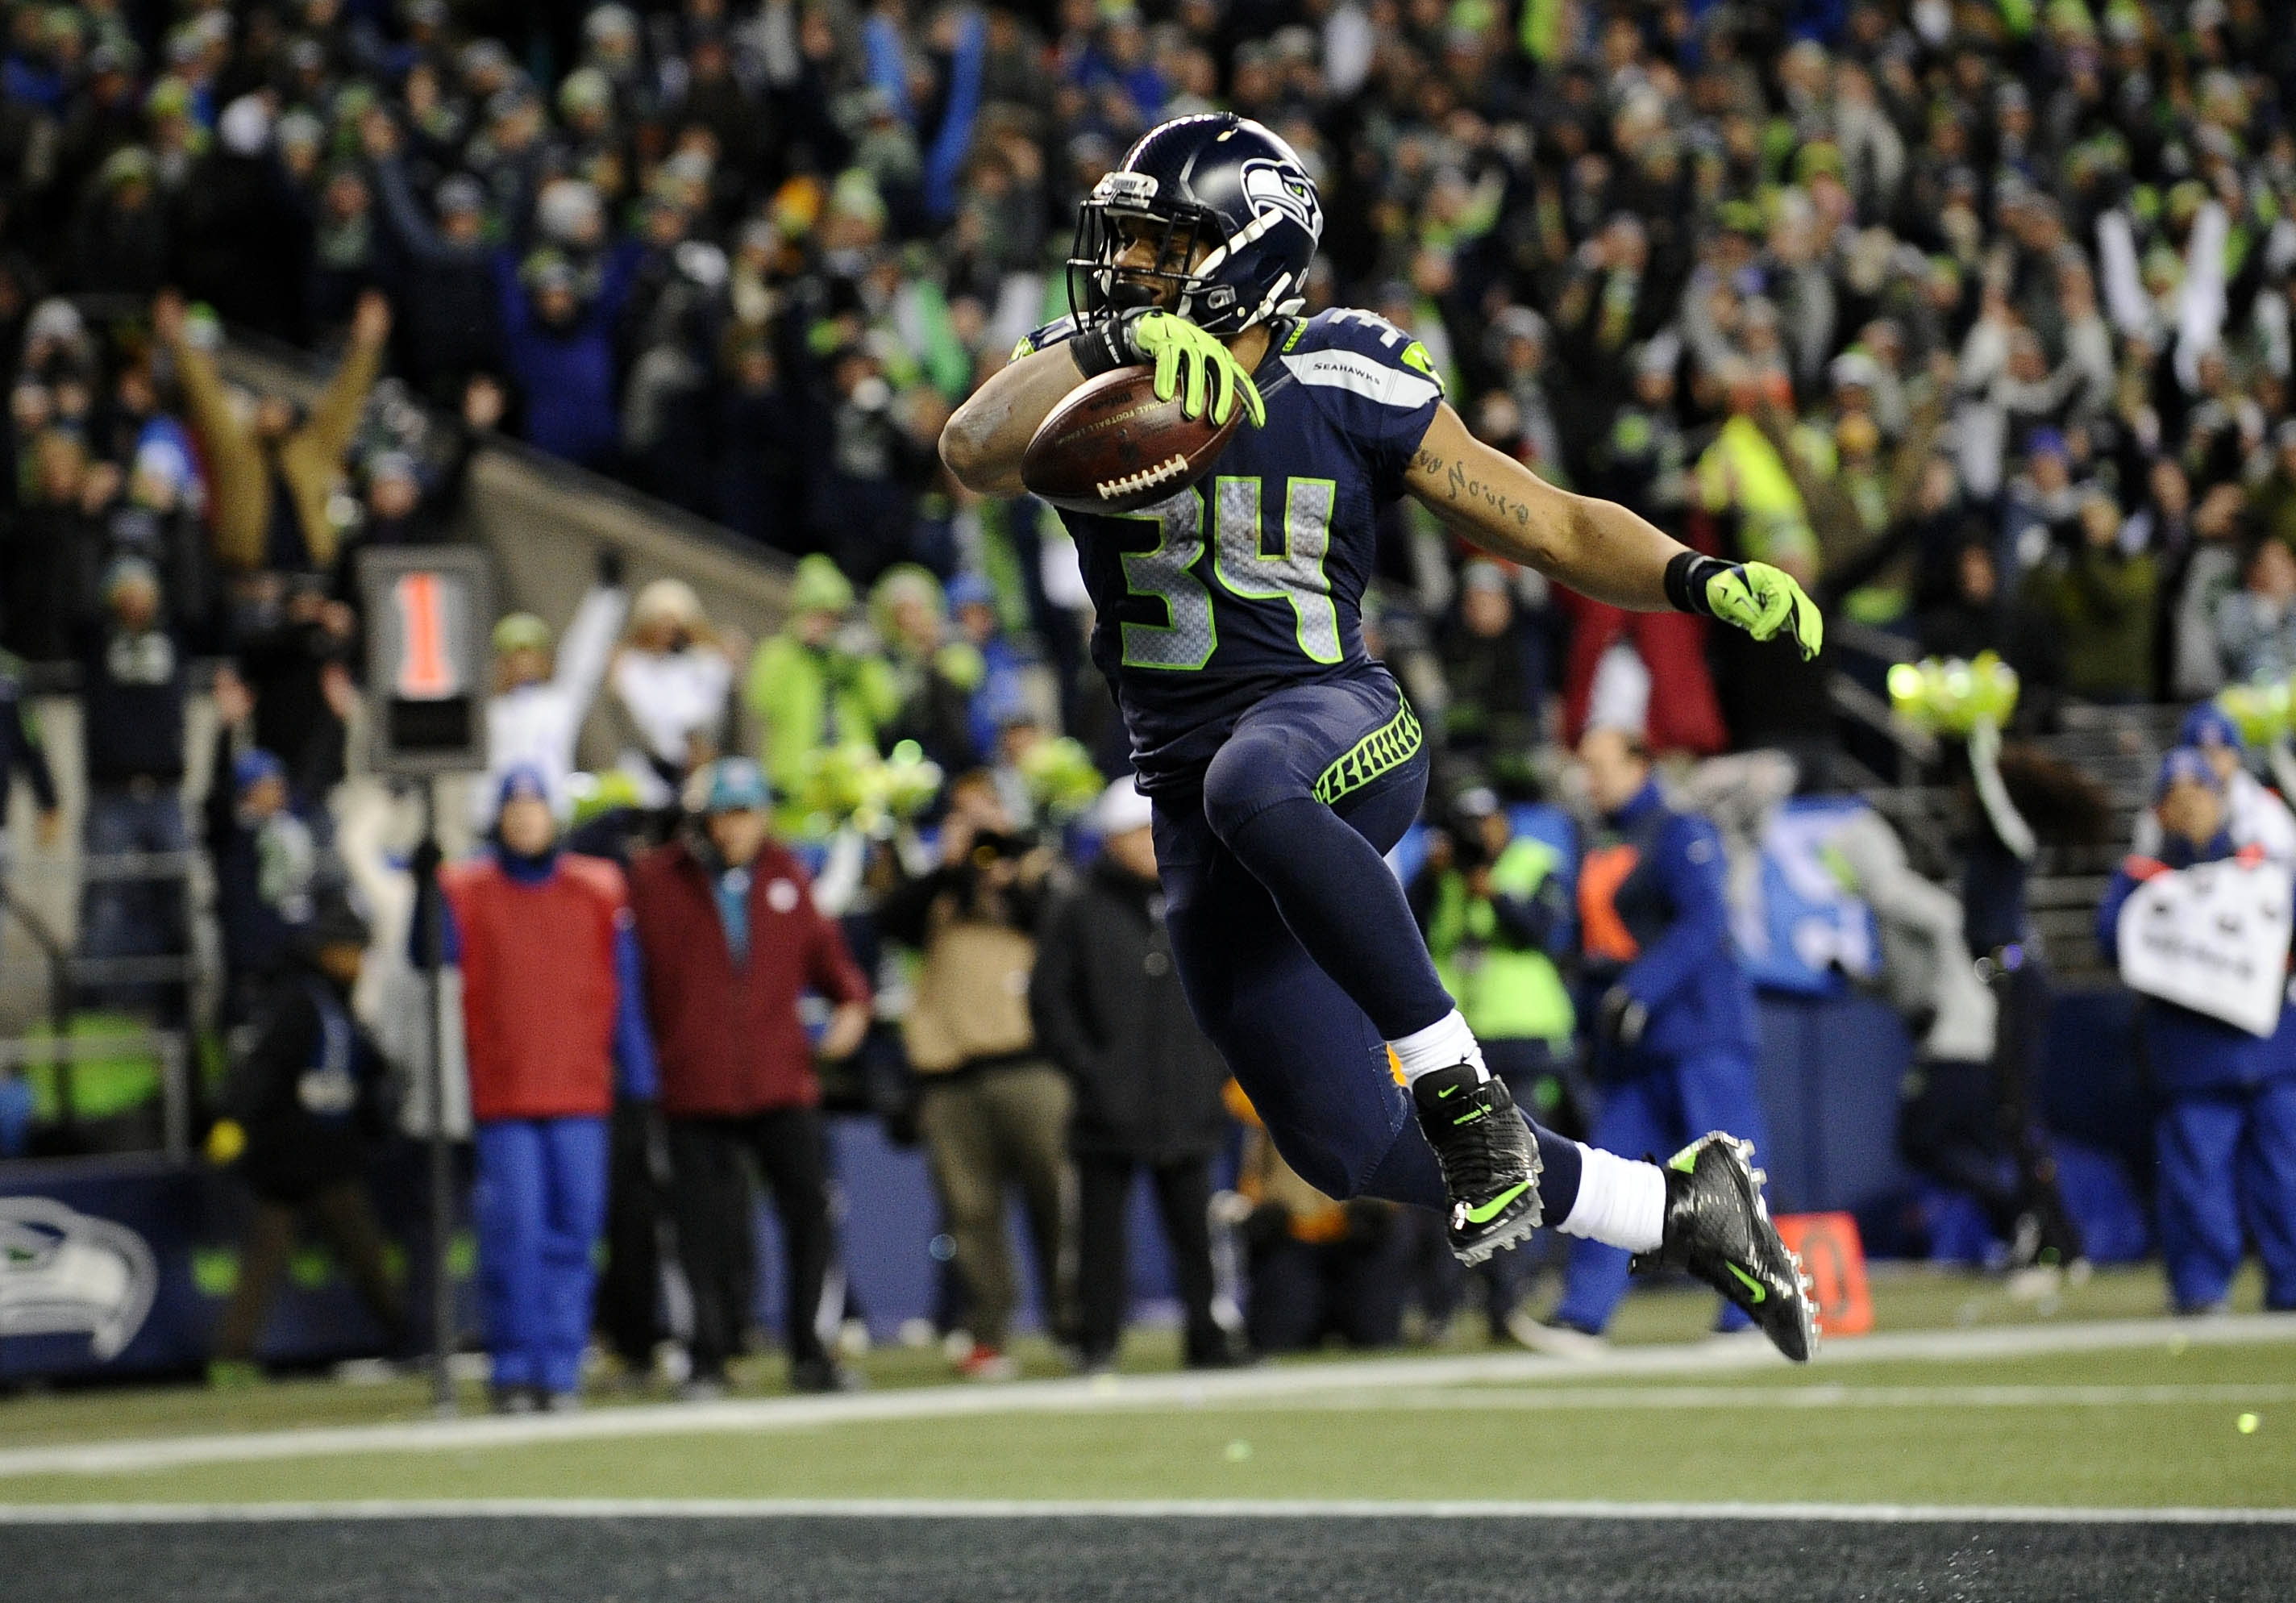 9795871-nfl-nfc-wild-card-detroit-lions-at-seattle-seahawks